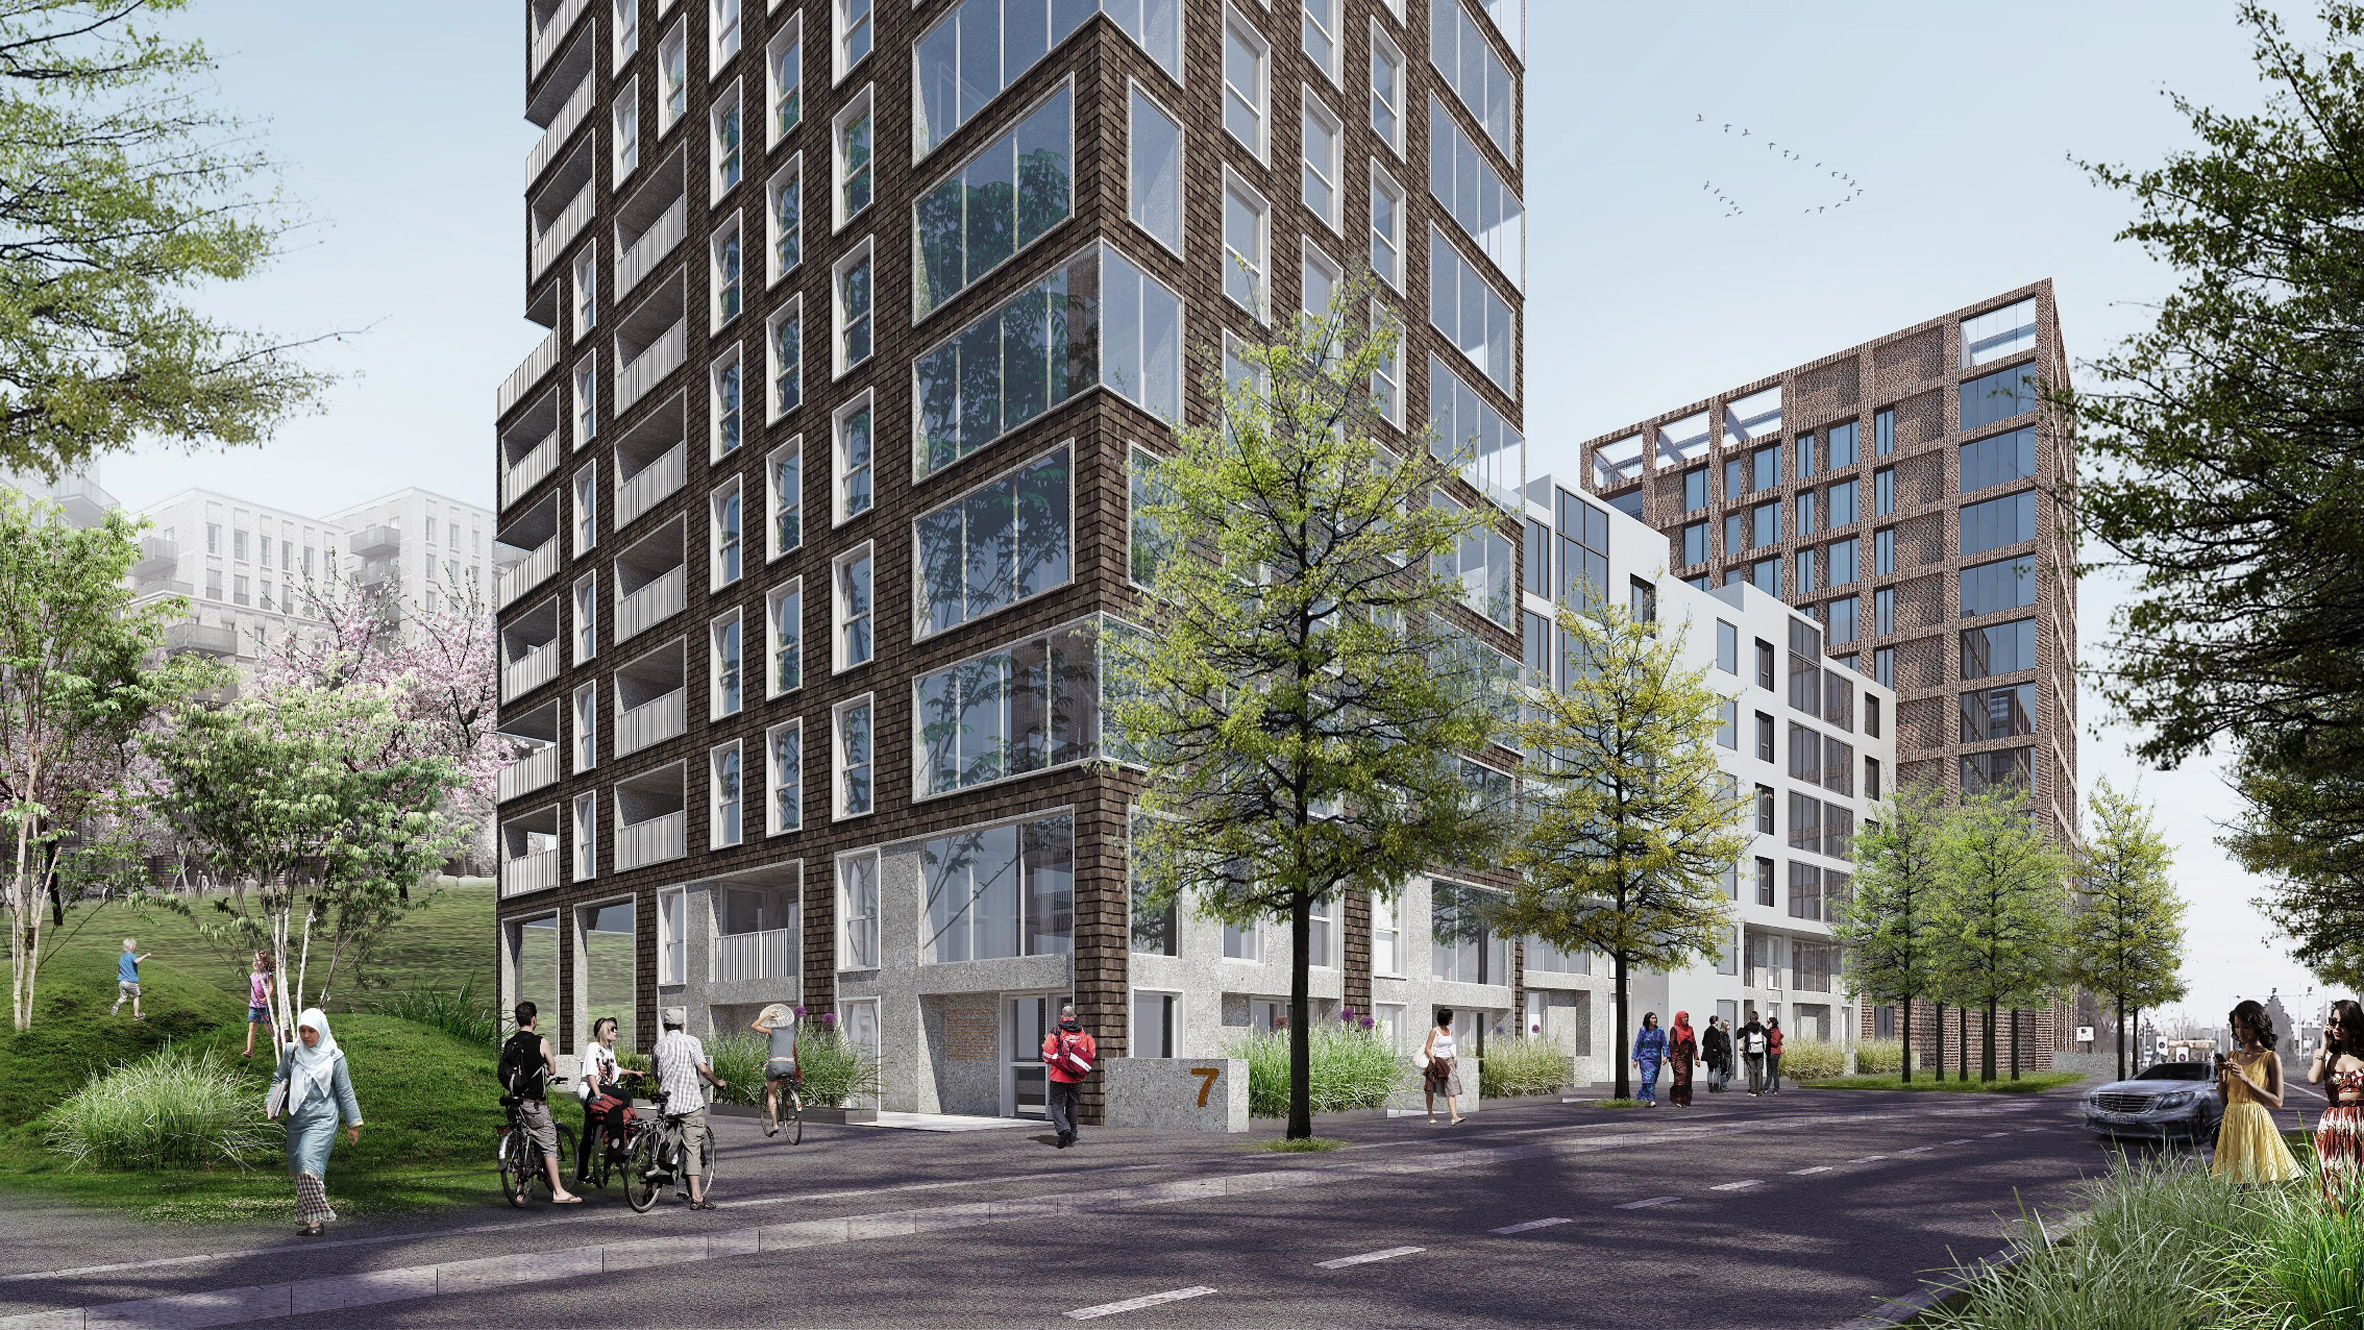 CF Møller appointed on Robin Hood Gardens replacement scheme